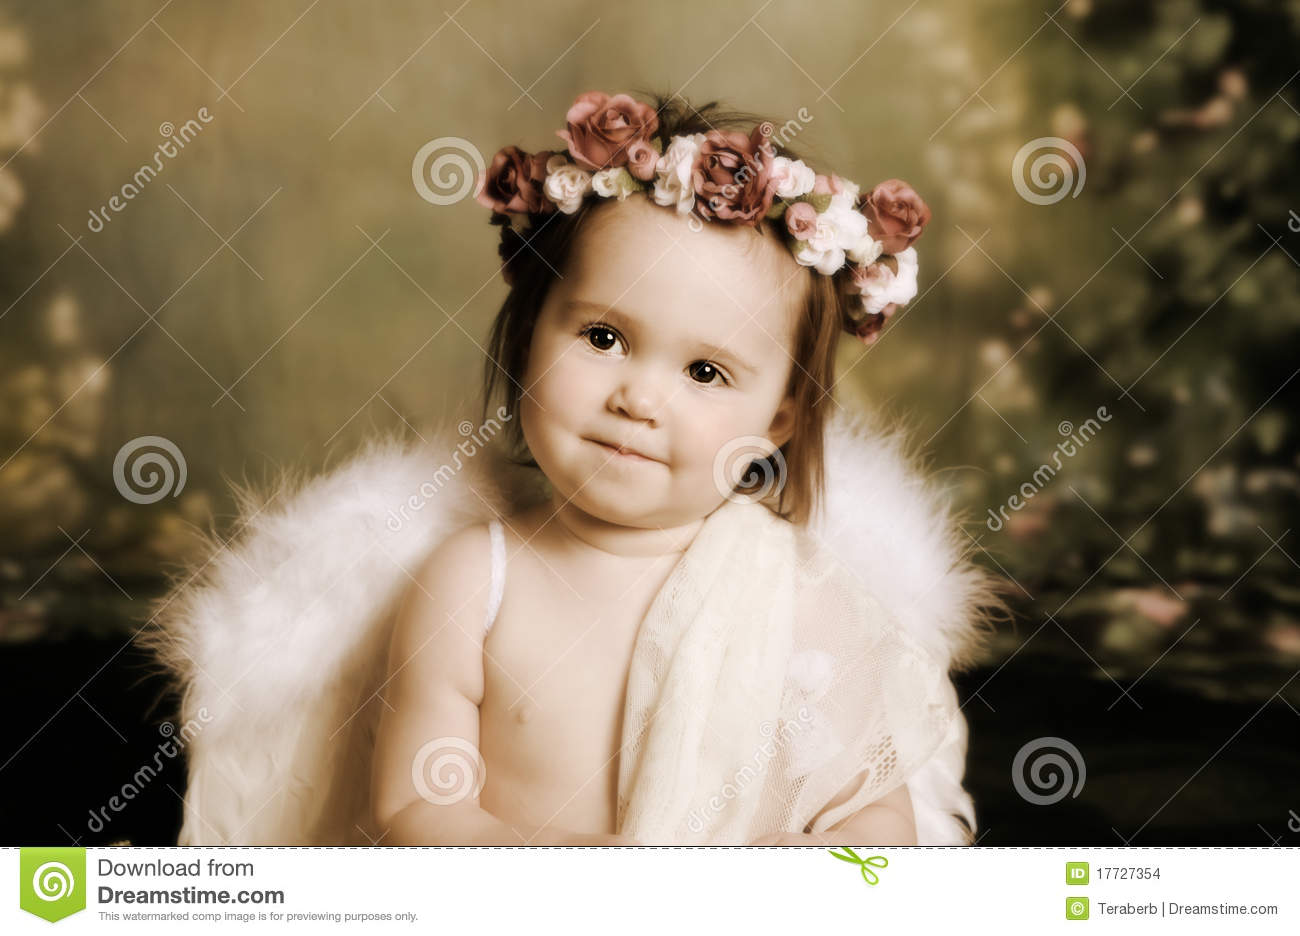 Sweet Baby Girl Wallpaper Free Download Sweet Baby Angel Stock Photo Image Of Aroma Artificial